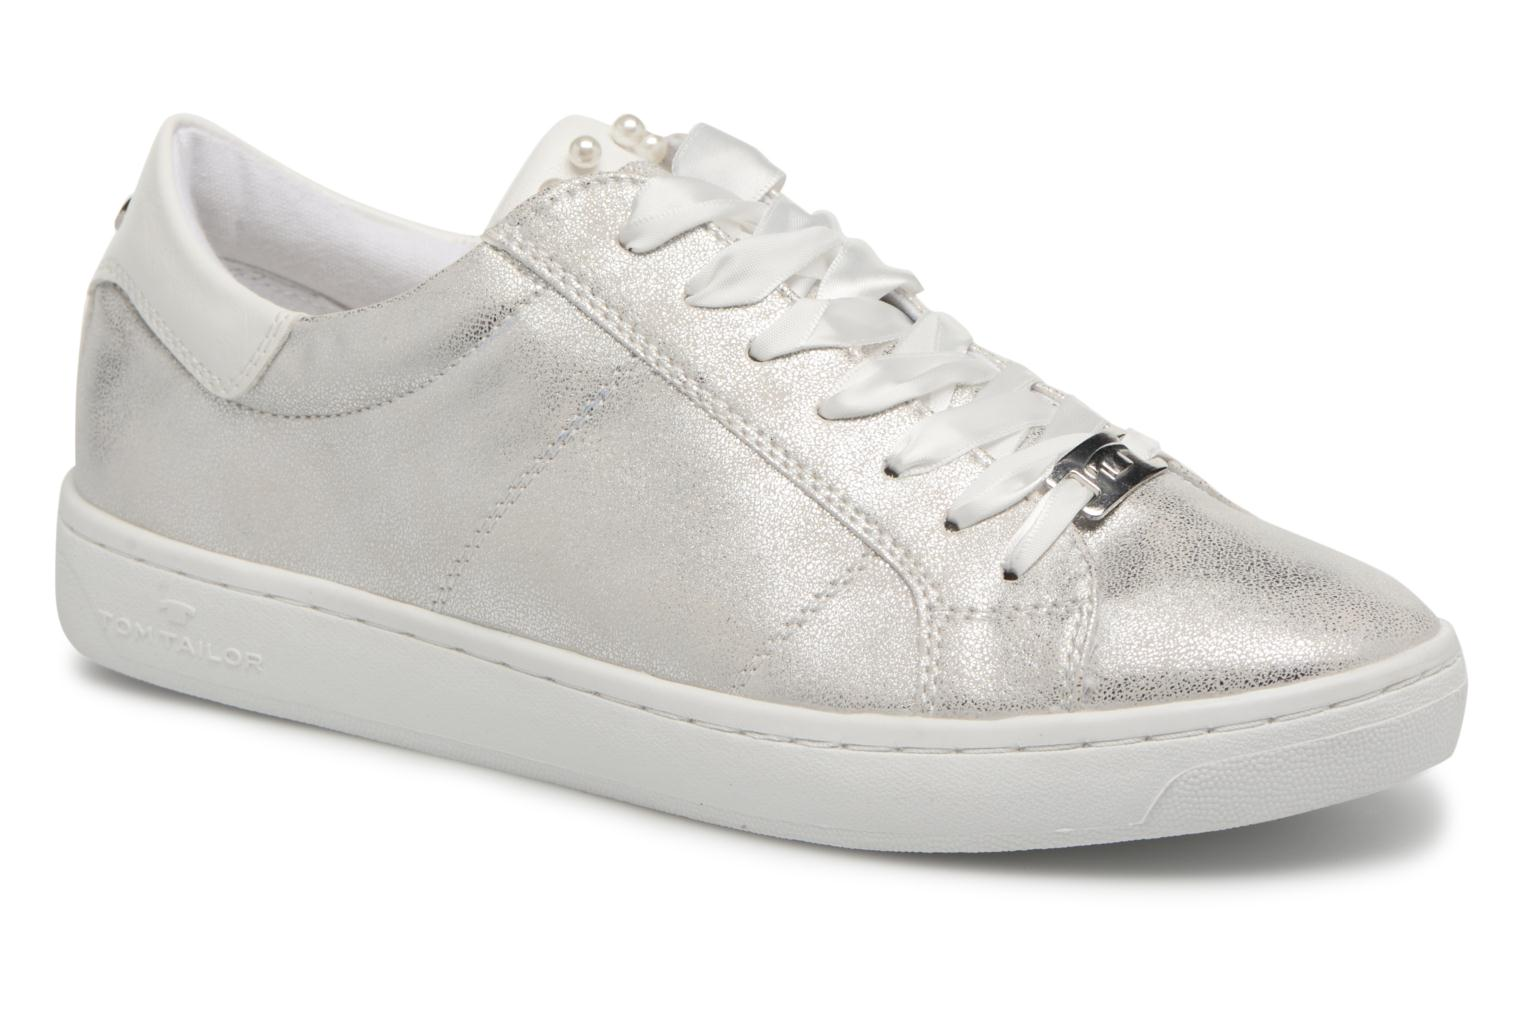 Marques Chaussure femme Tom Tailor femme Hannah Silver